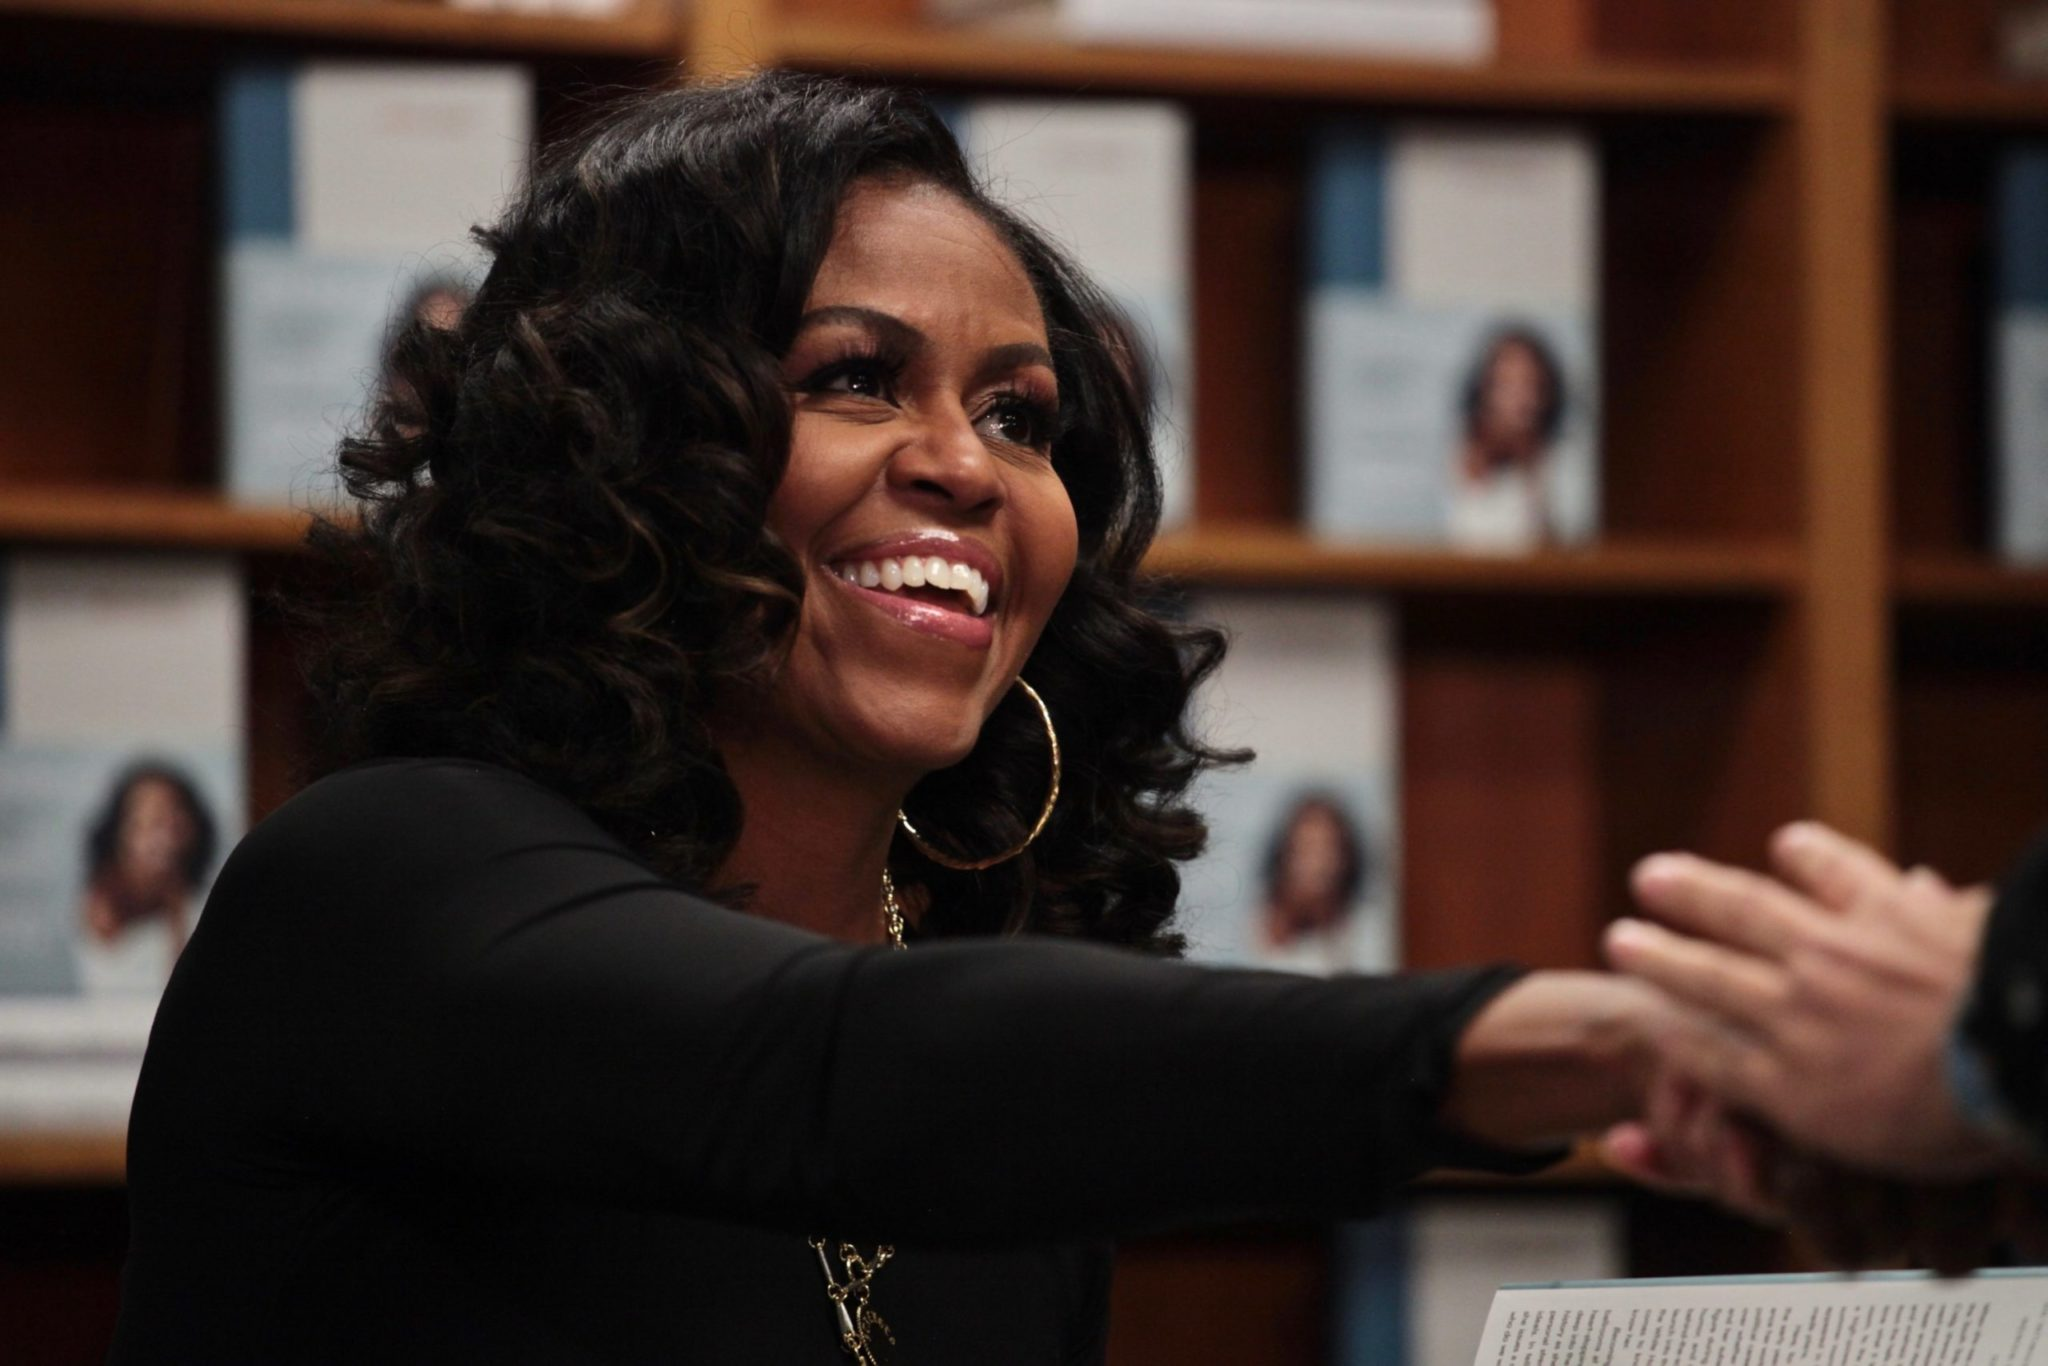 PHOTOS: Michelle Obama Appeared at Politics and Prose on Monday